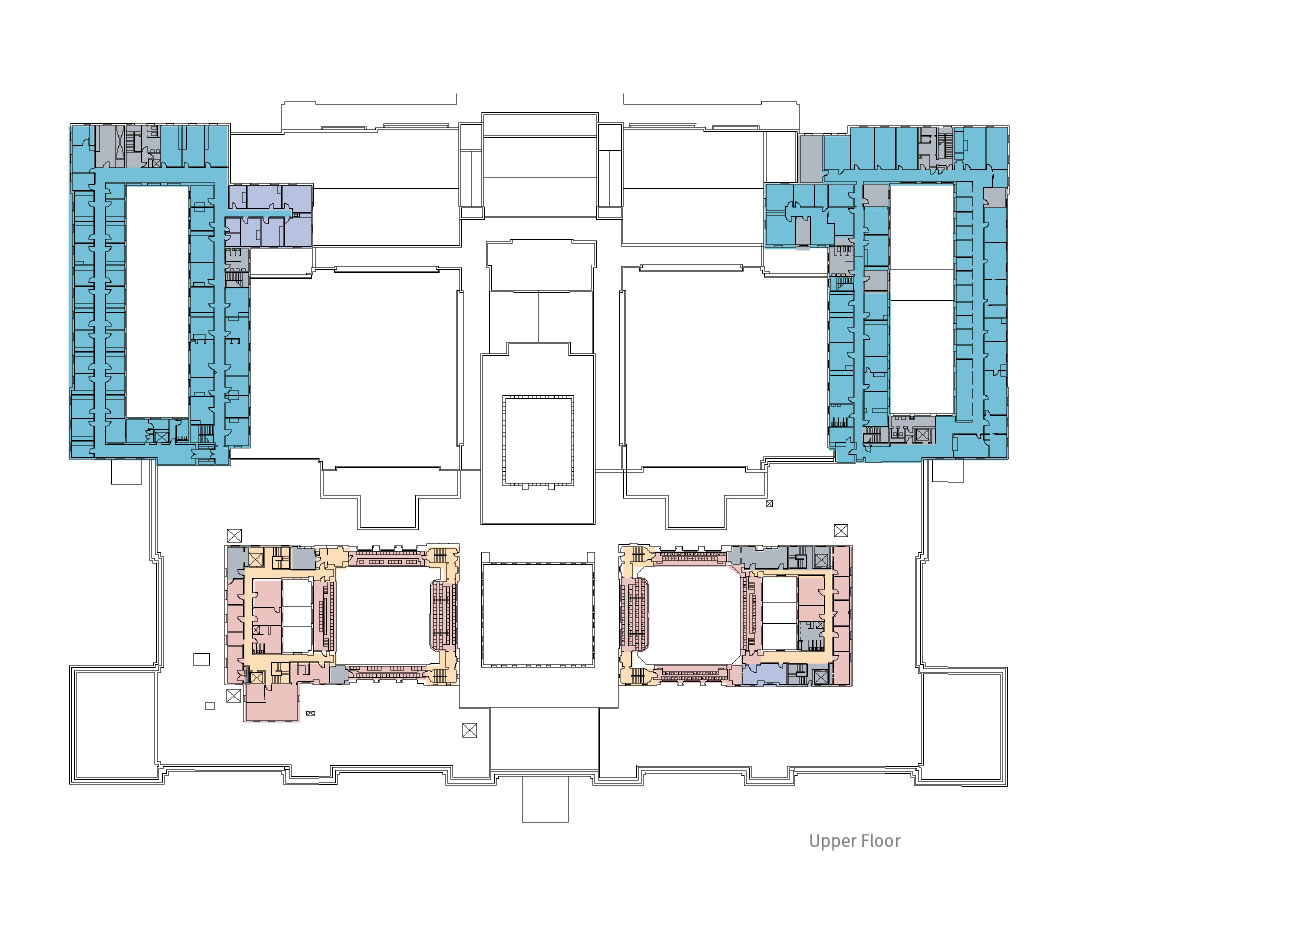 A floorplan showing the 2013 use plan, upper floor.